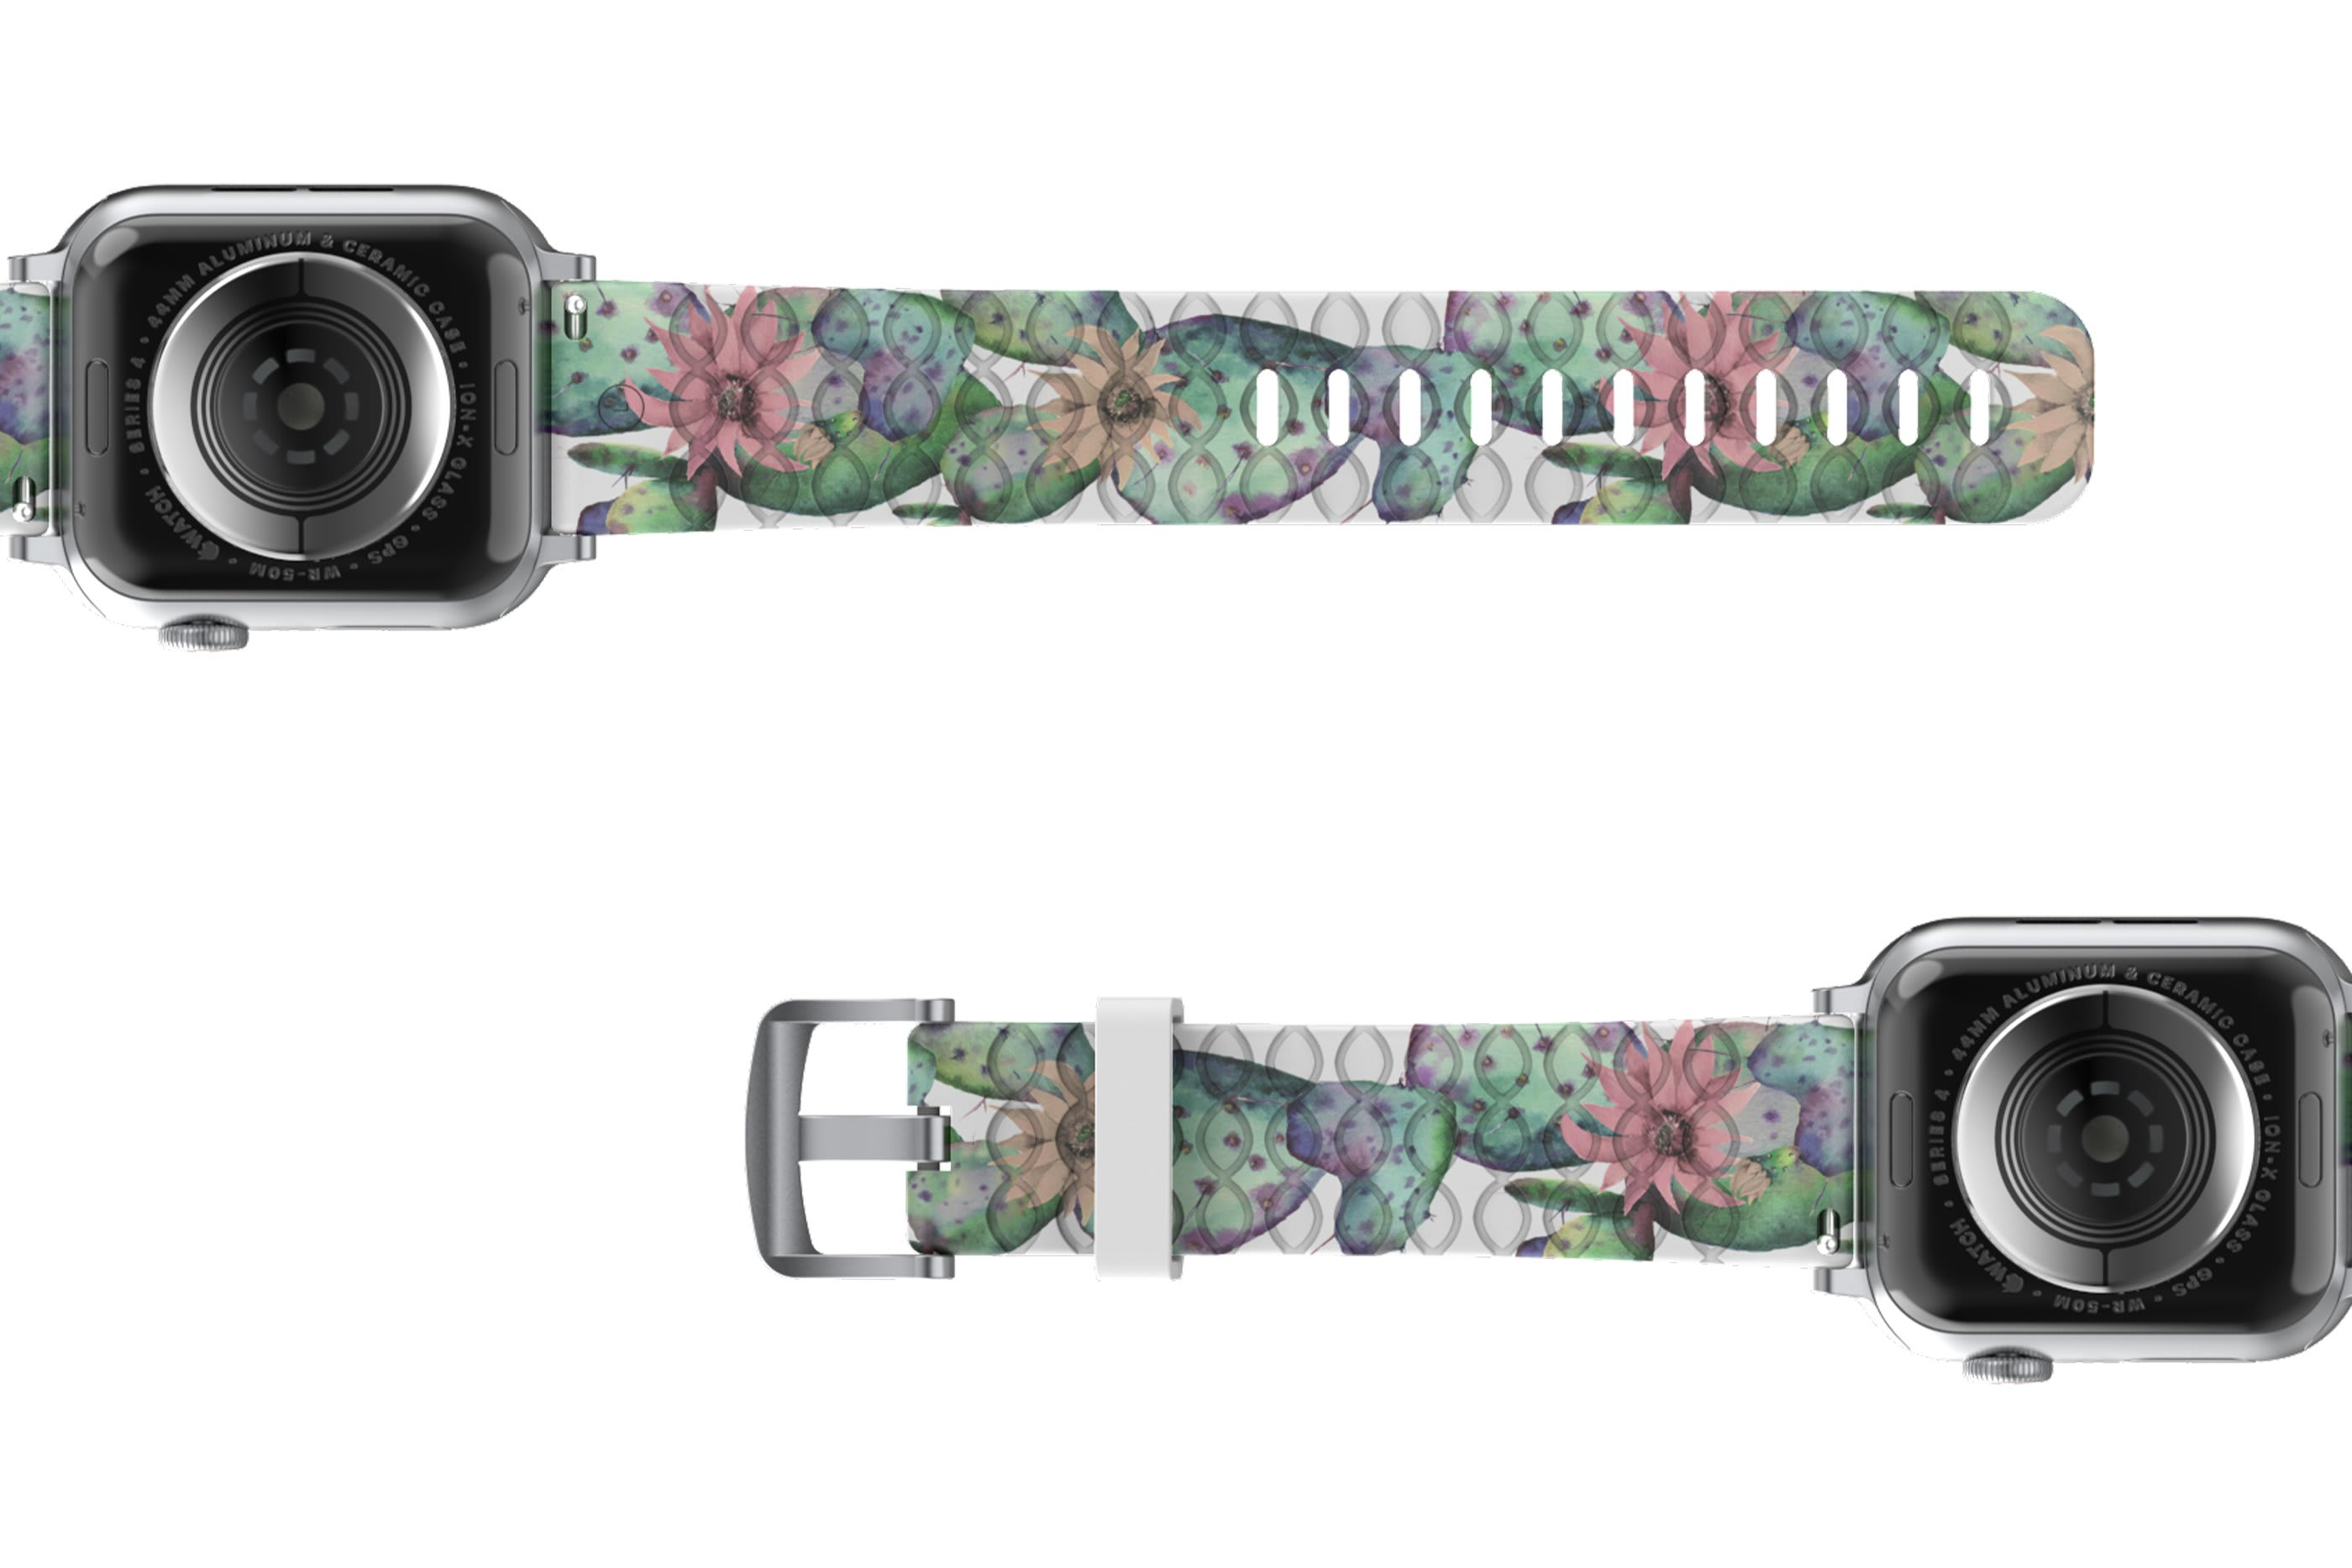 Cactus Bloom Apple Watch Band with gray hardware viewed bottom up